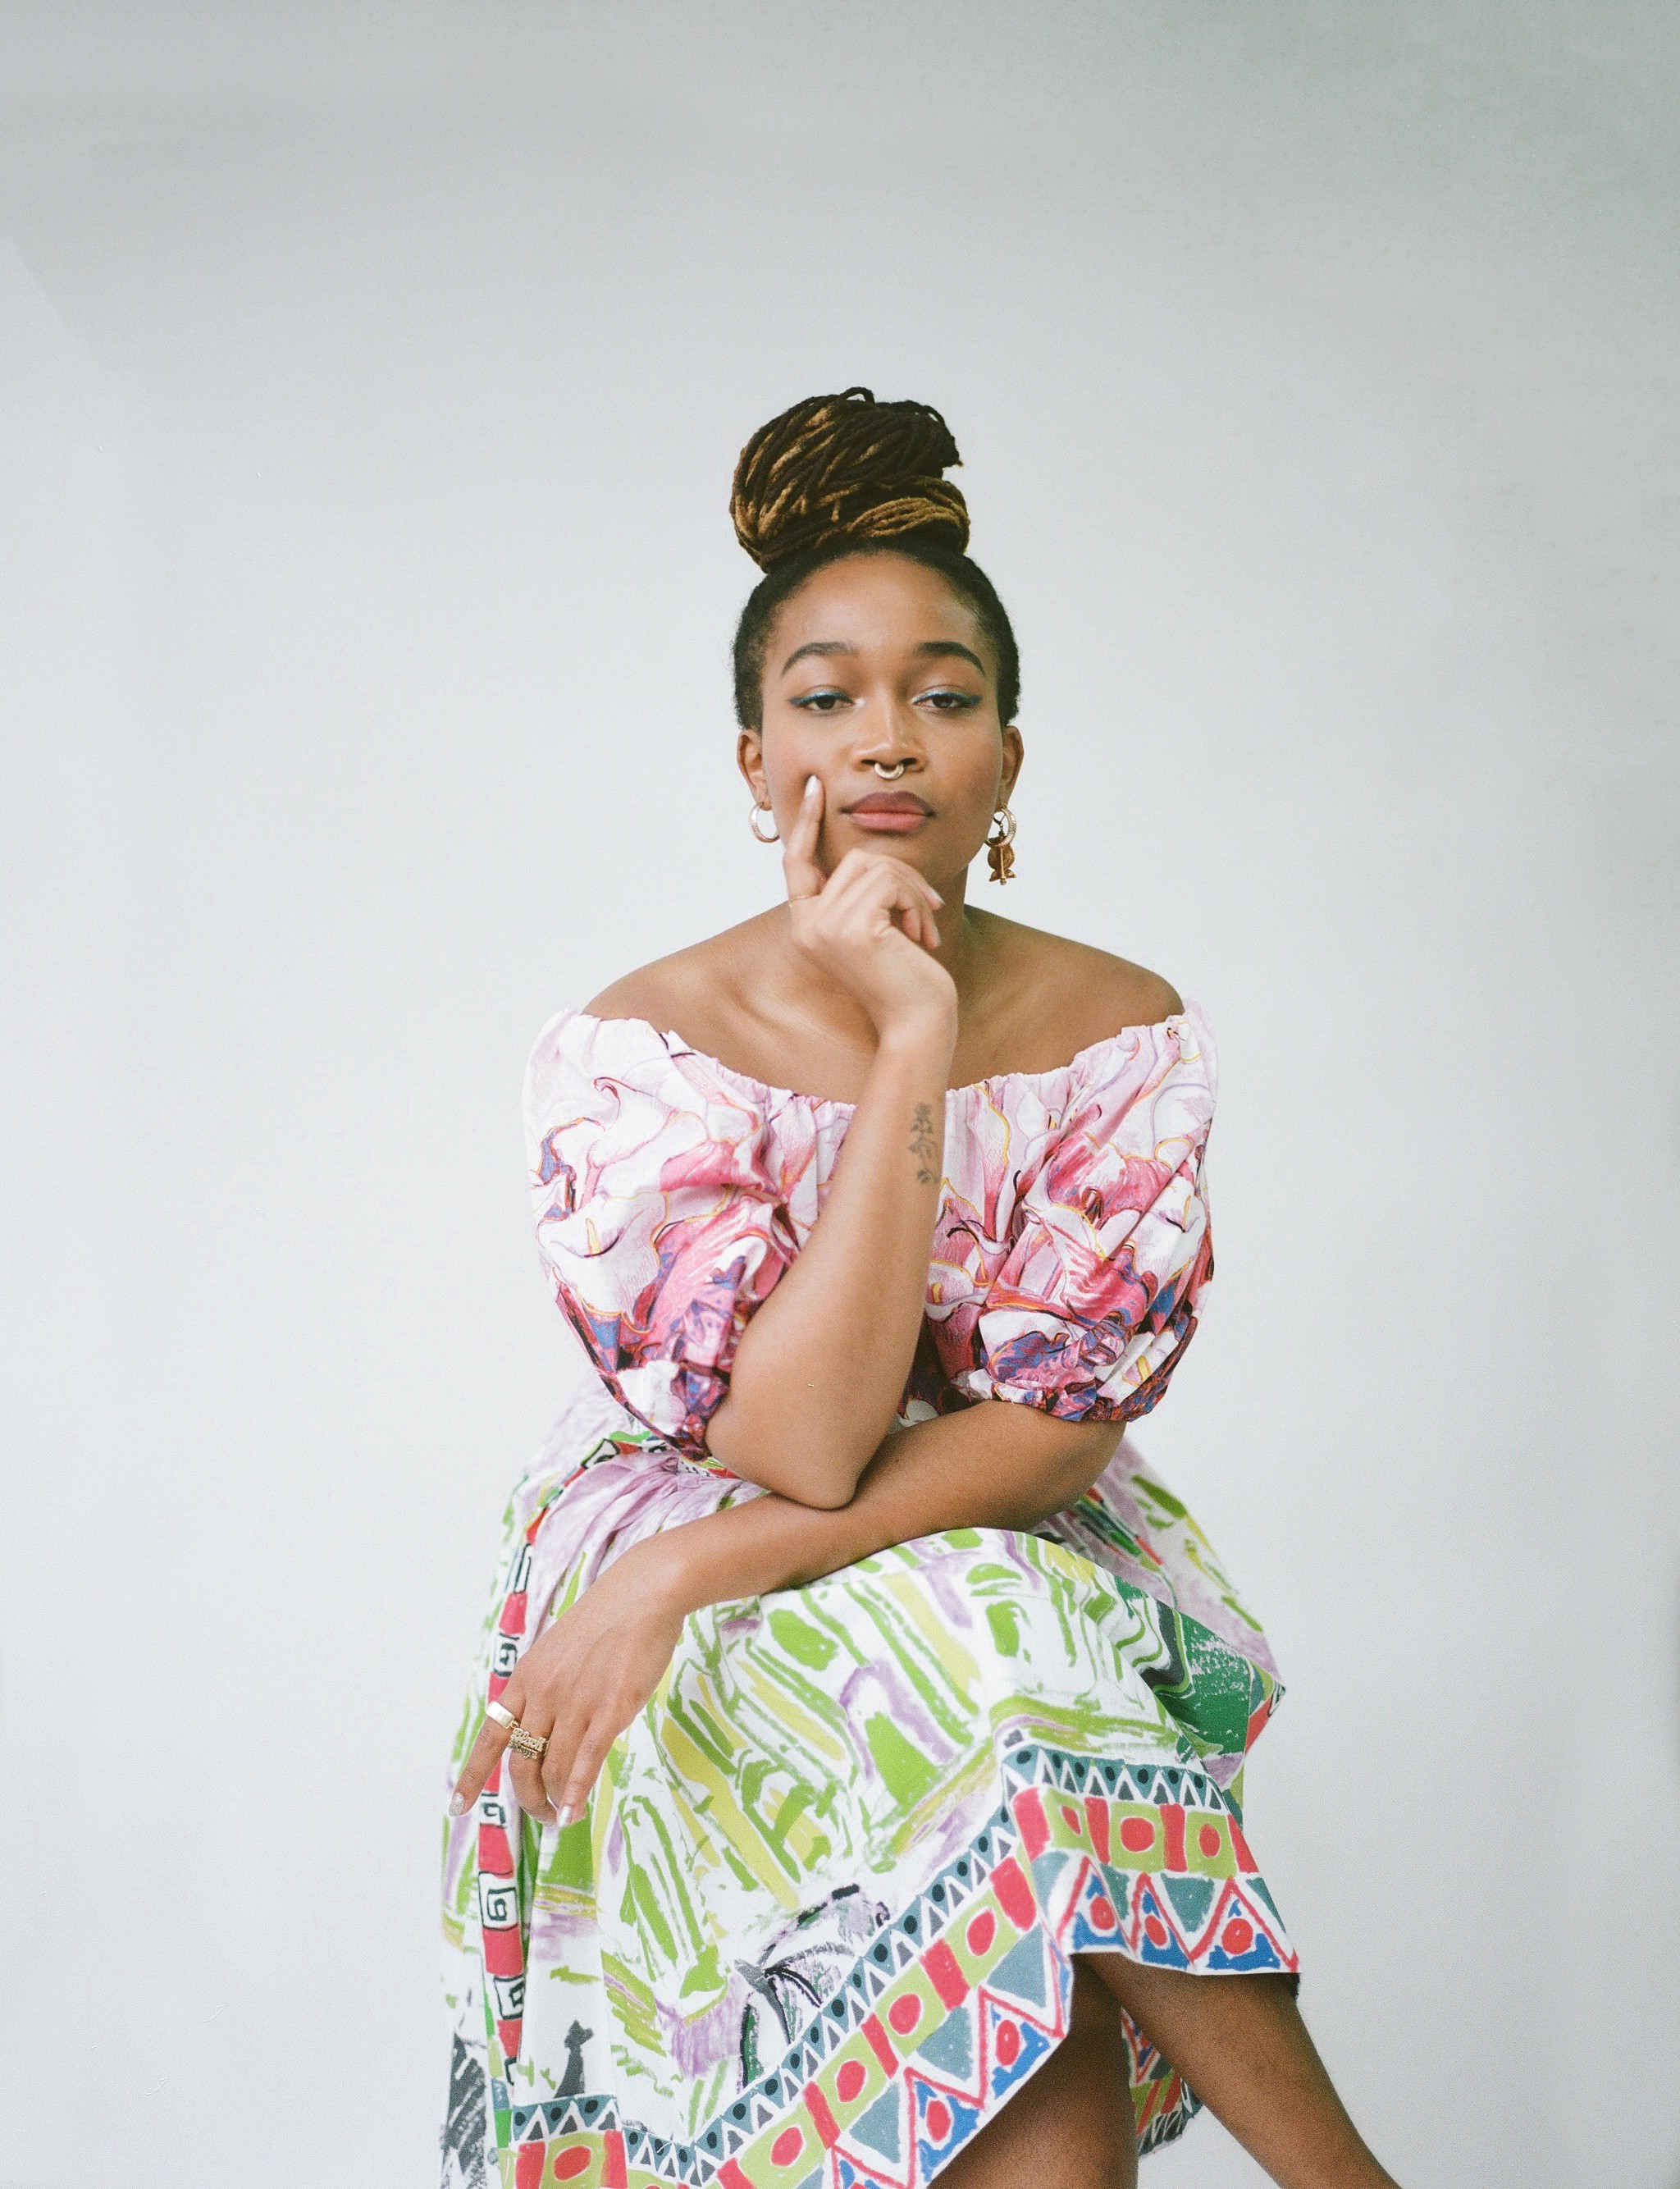 Kimberly Drew poses seated in a floral dress.